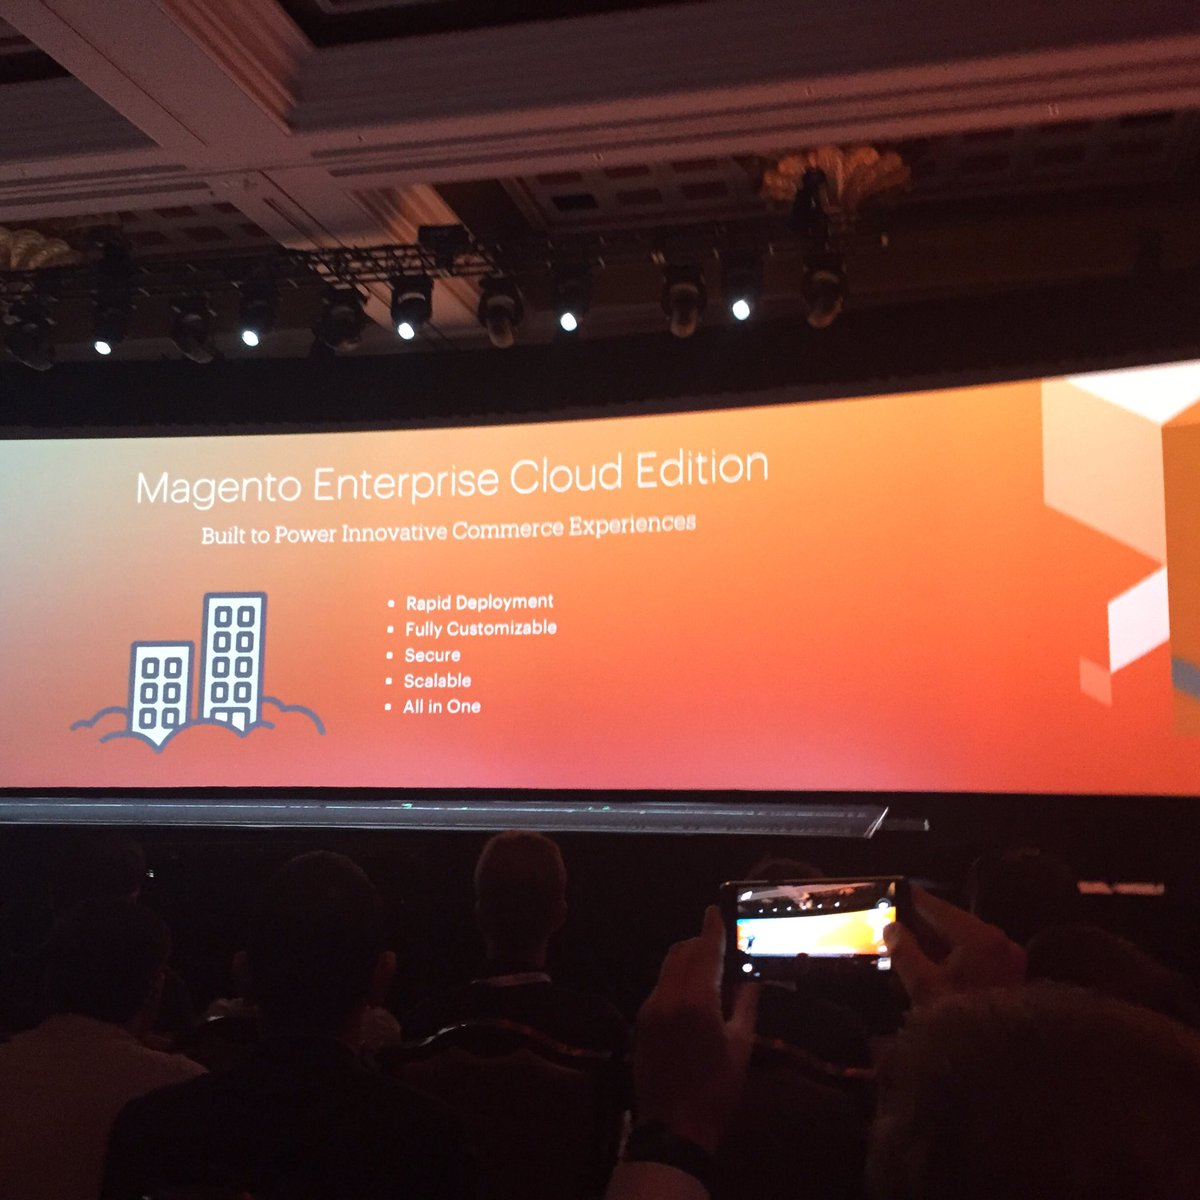 jaalcant: New MECE #MagentoImagine https://t.co/HXDj3nW0a2